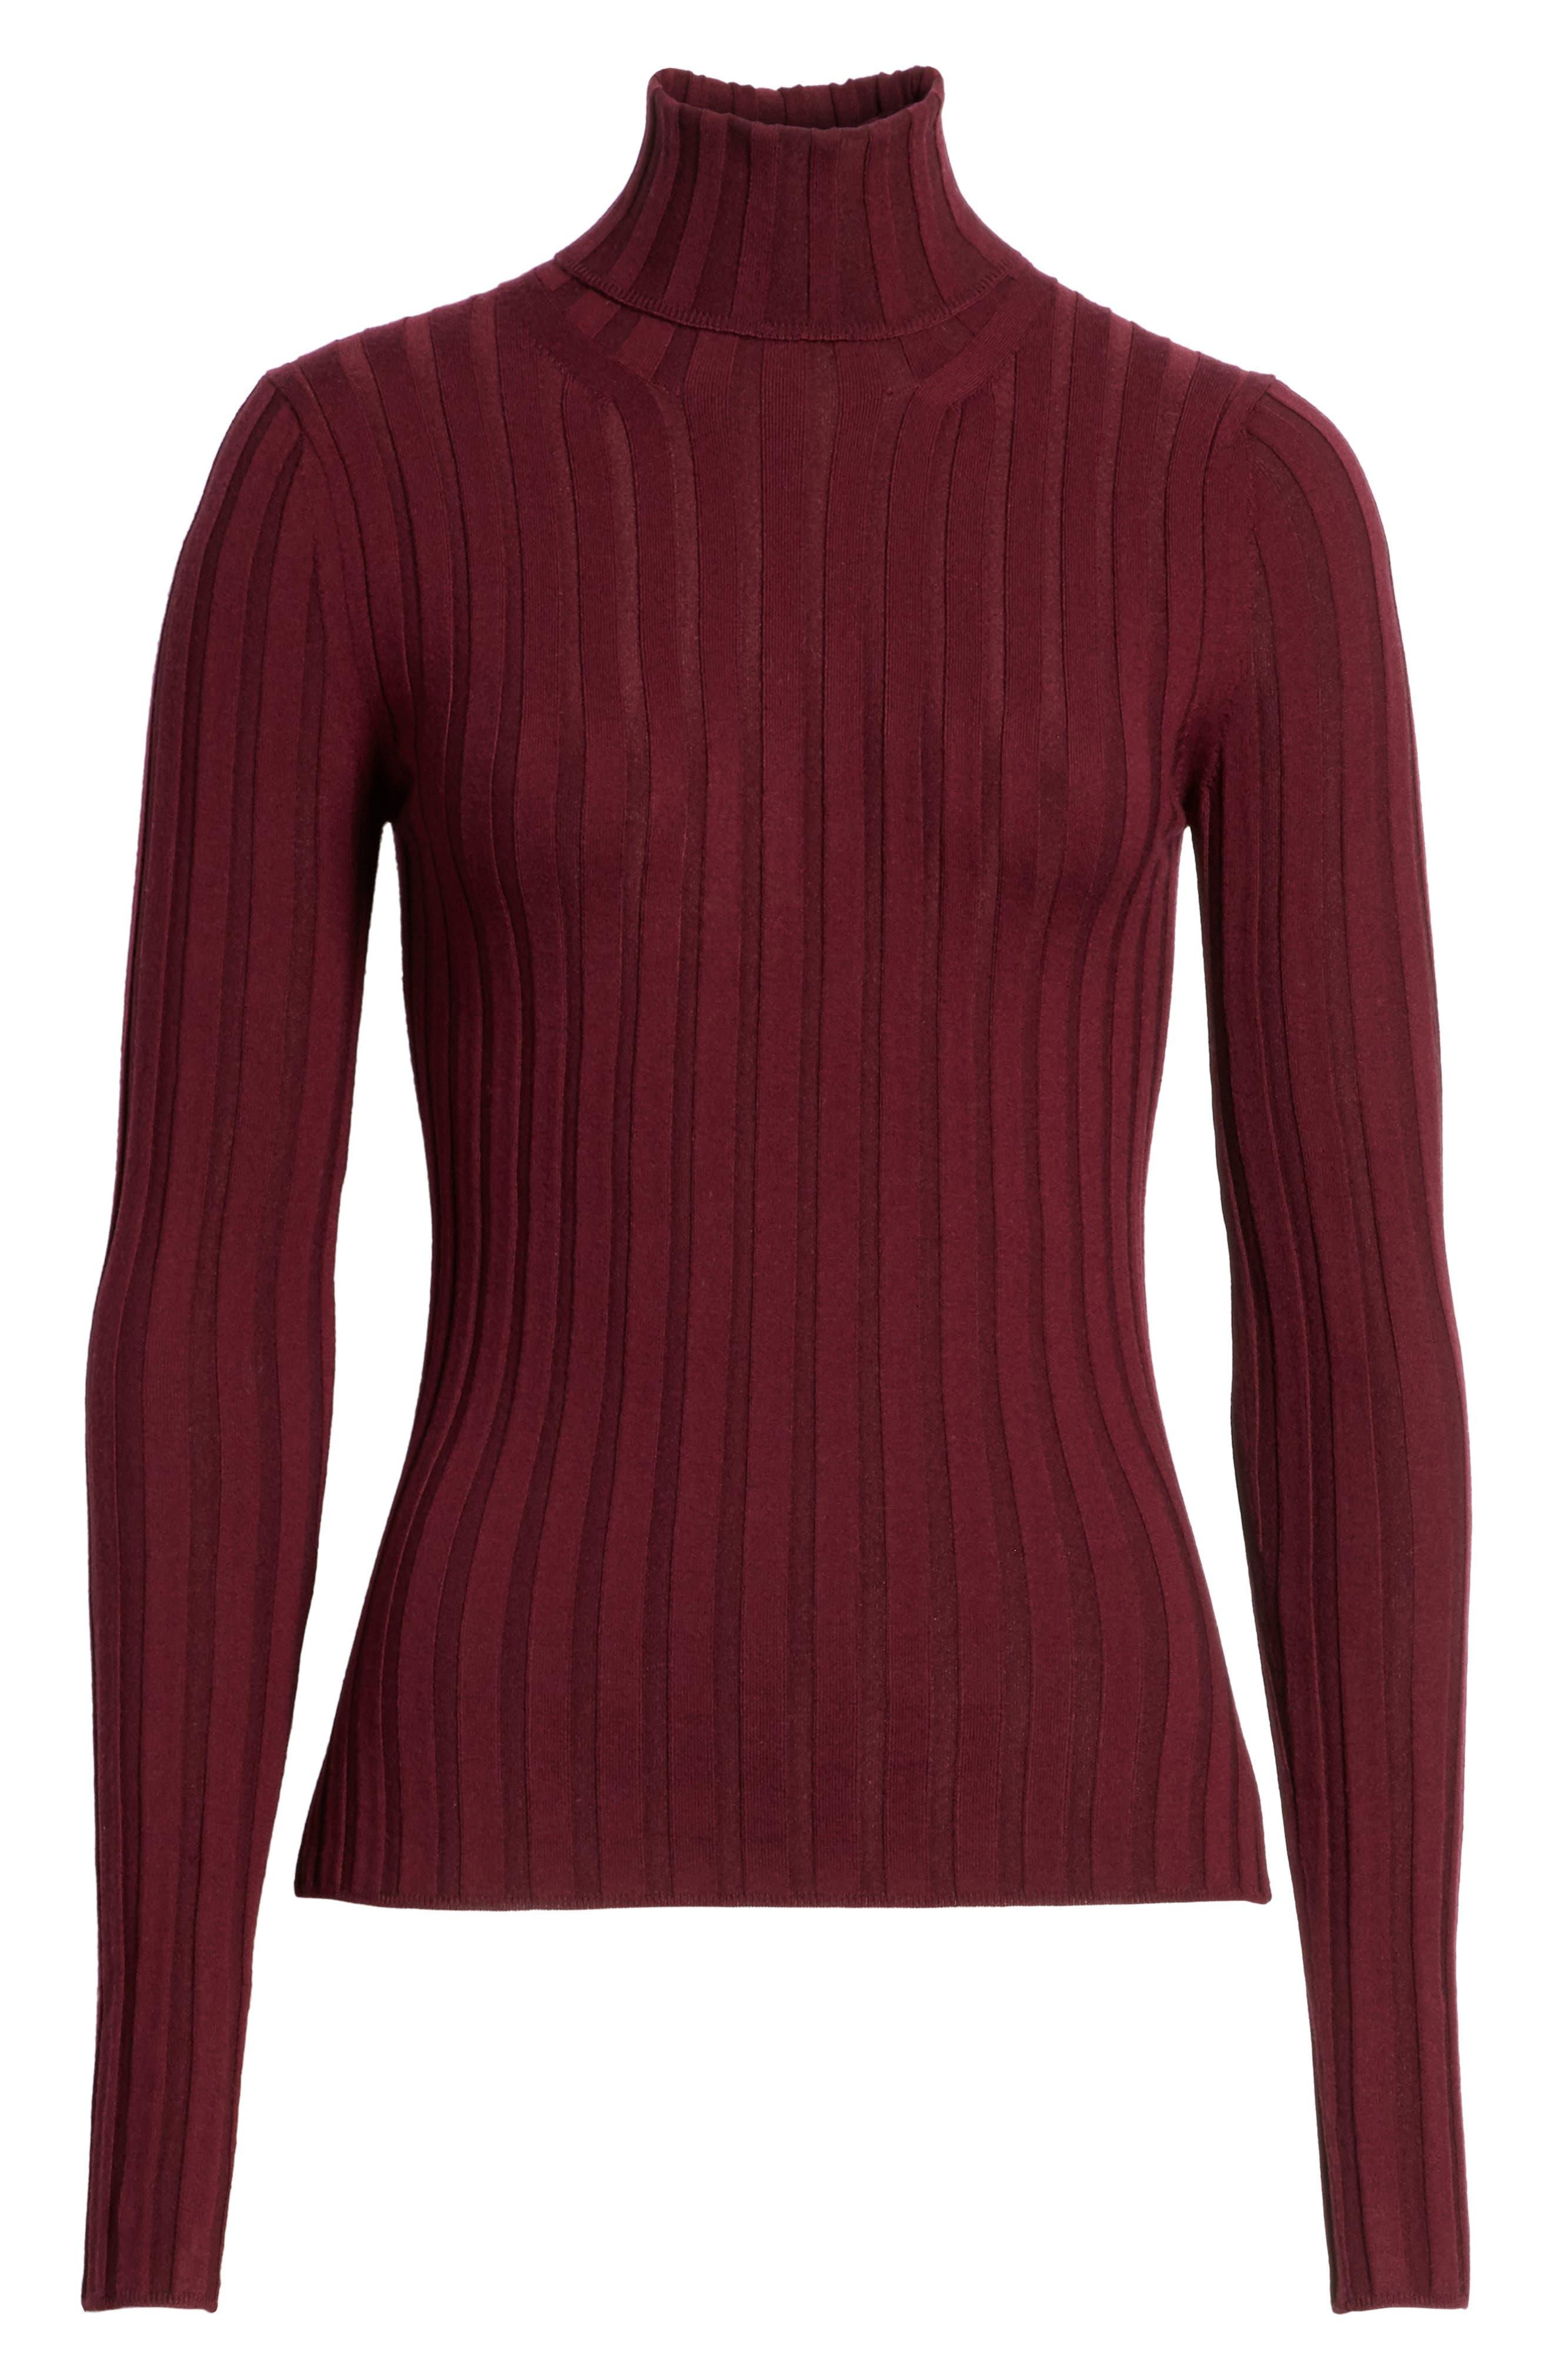 Corina Fitted Turtleneck Sweater,                             Alternate thumbnail 6, color,                             Burgundy